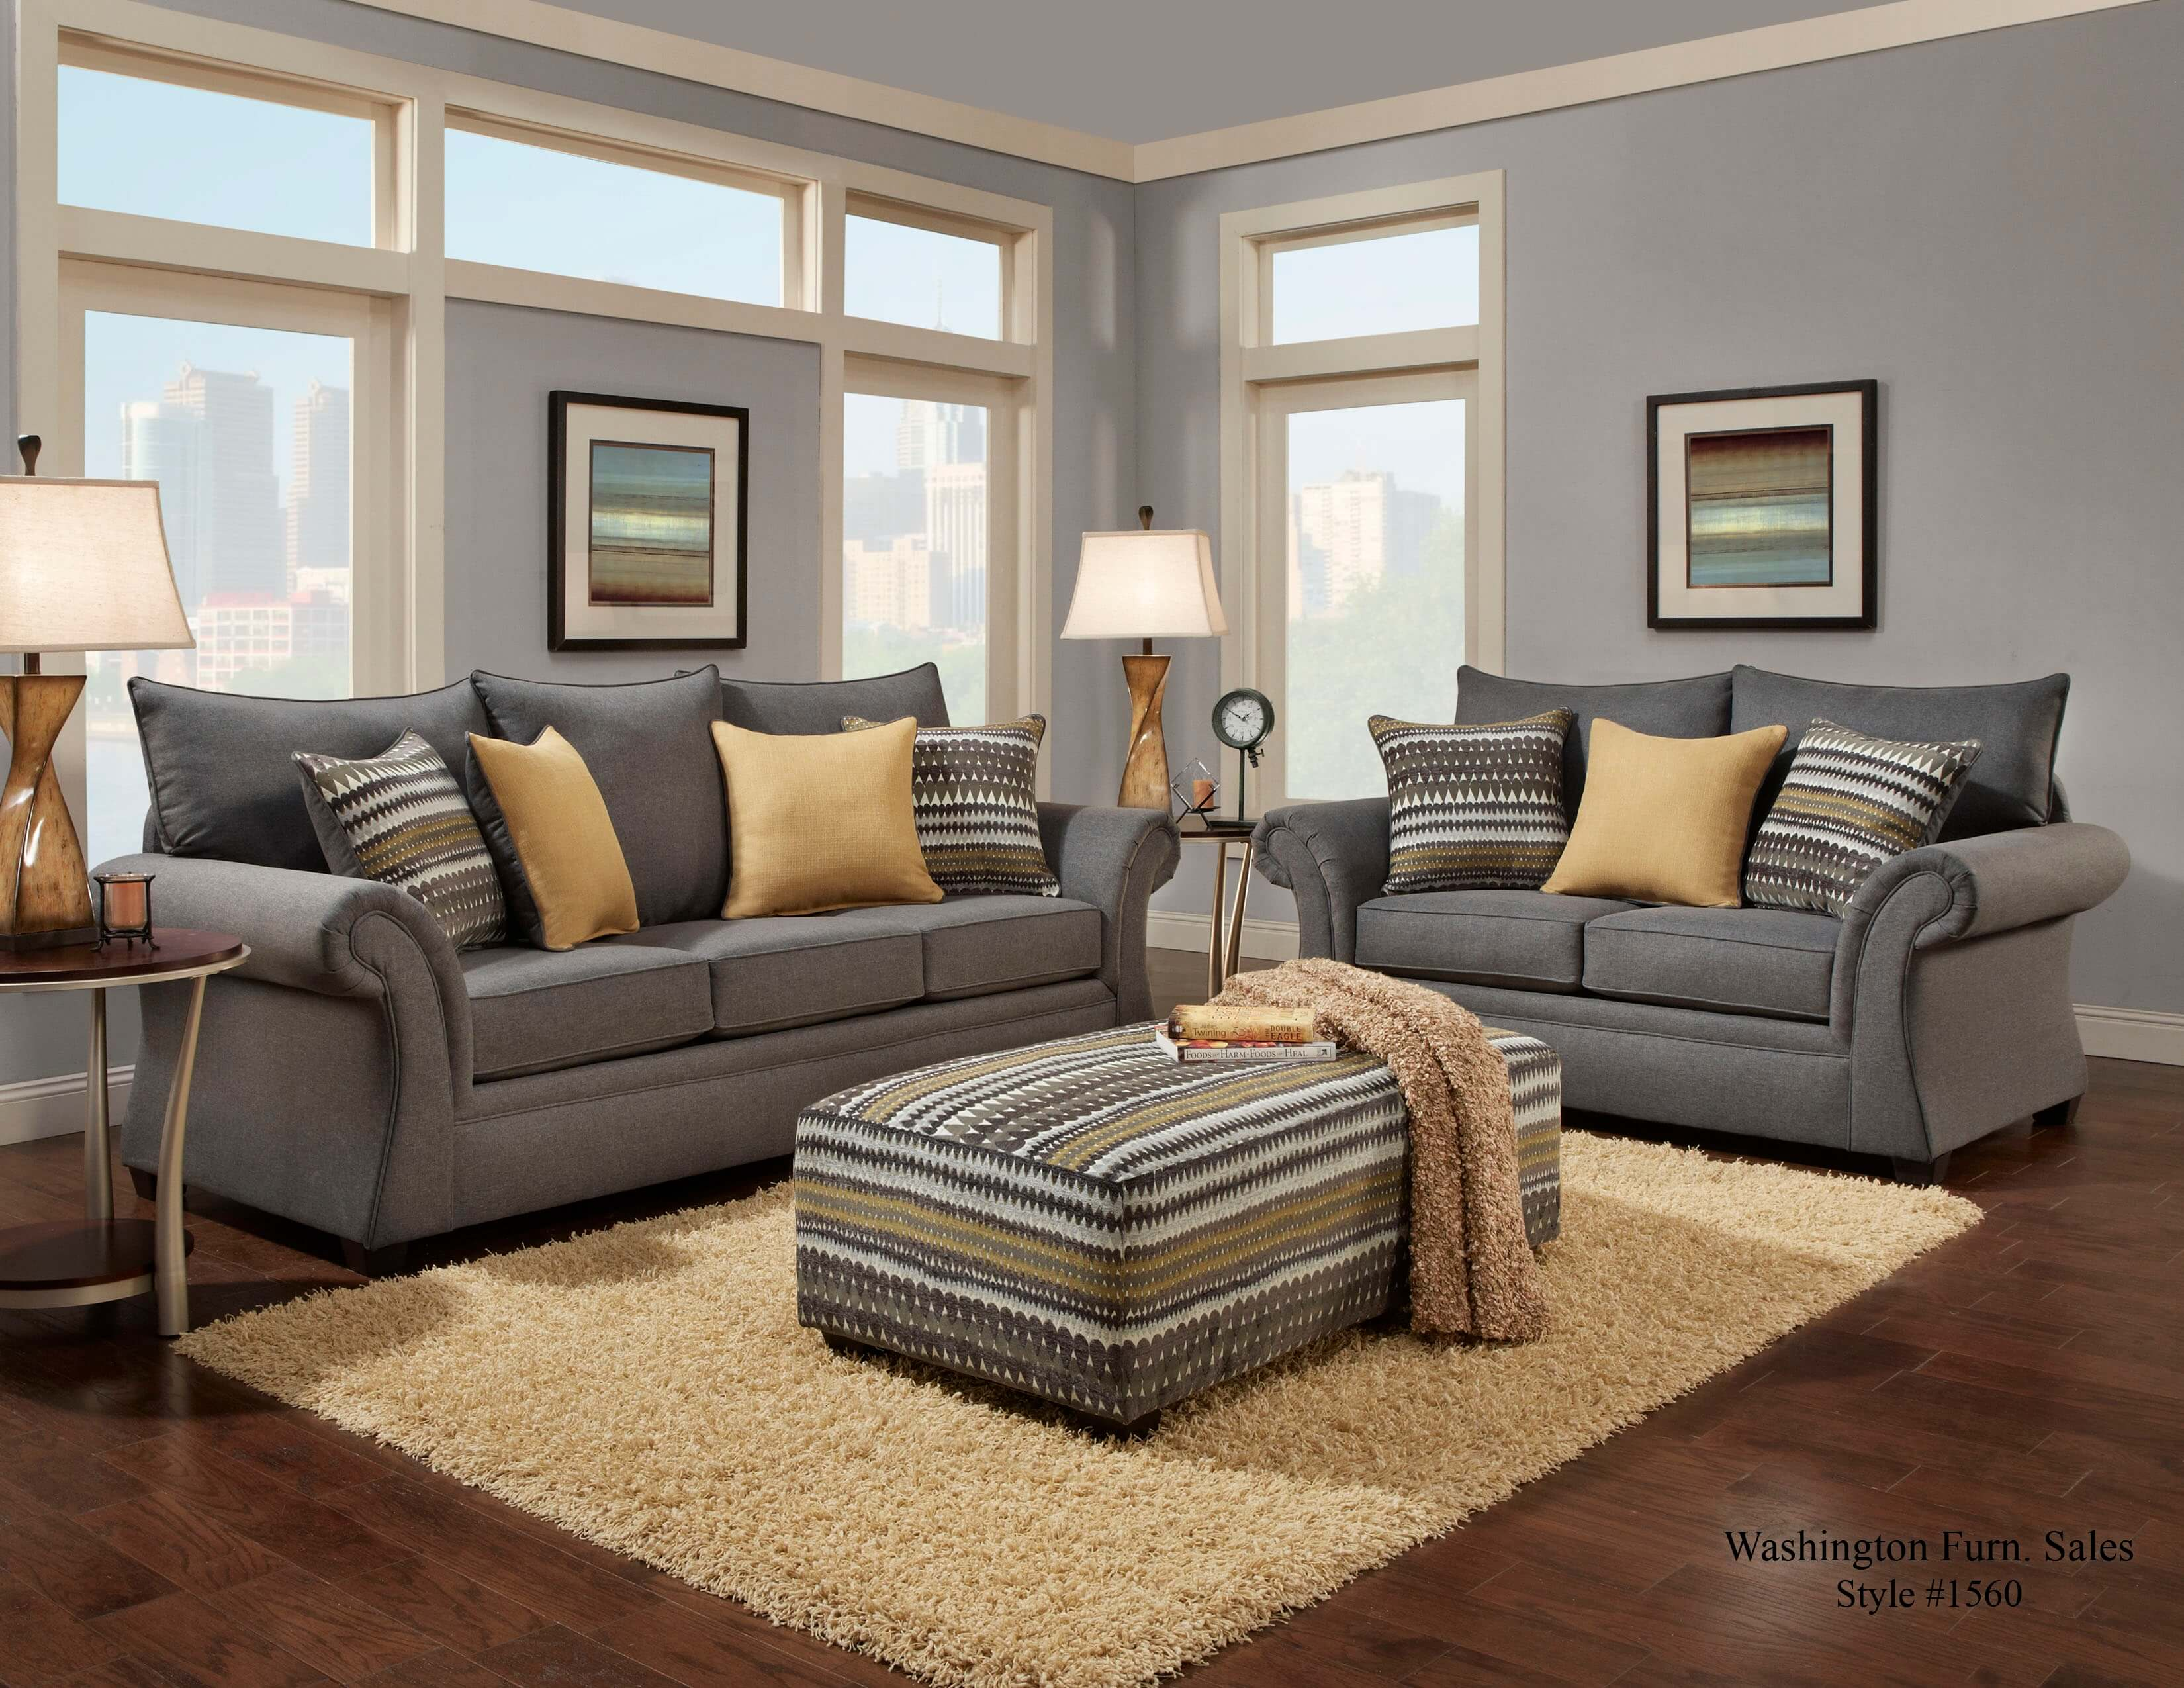 Gray Sofas For Living Room 1560 Jitterbug Gray Sofa And Loveseat Discontinued